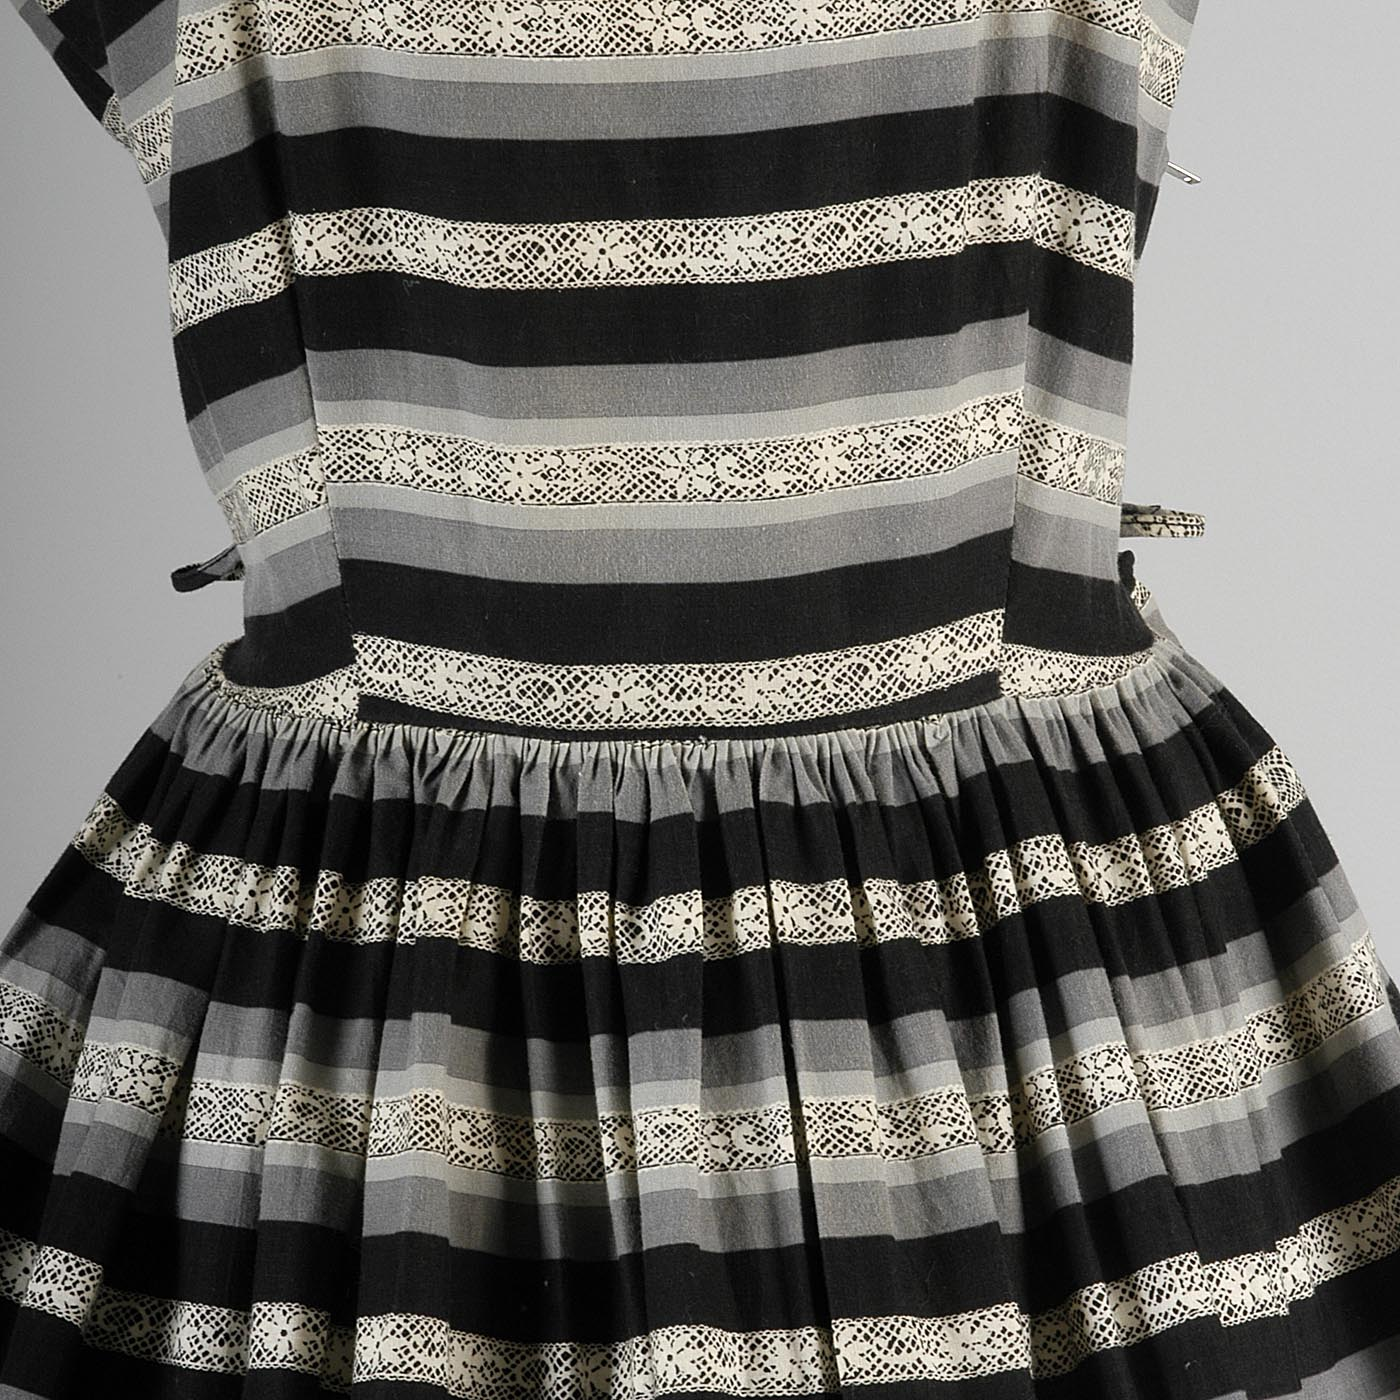 1950s Black and Gray Lace Print Dress